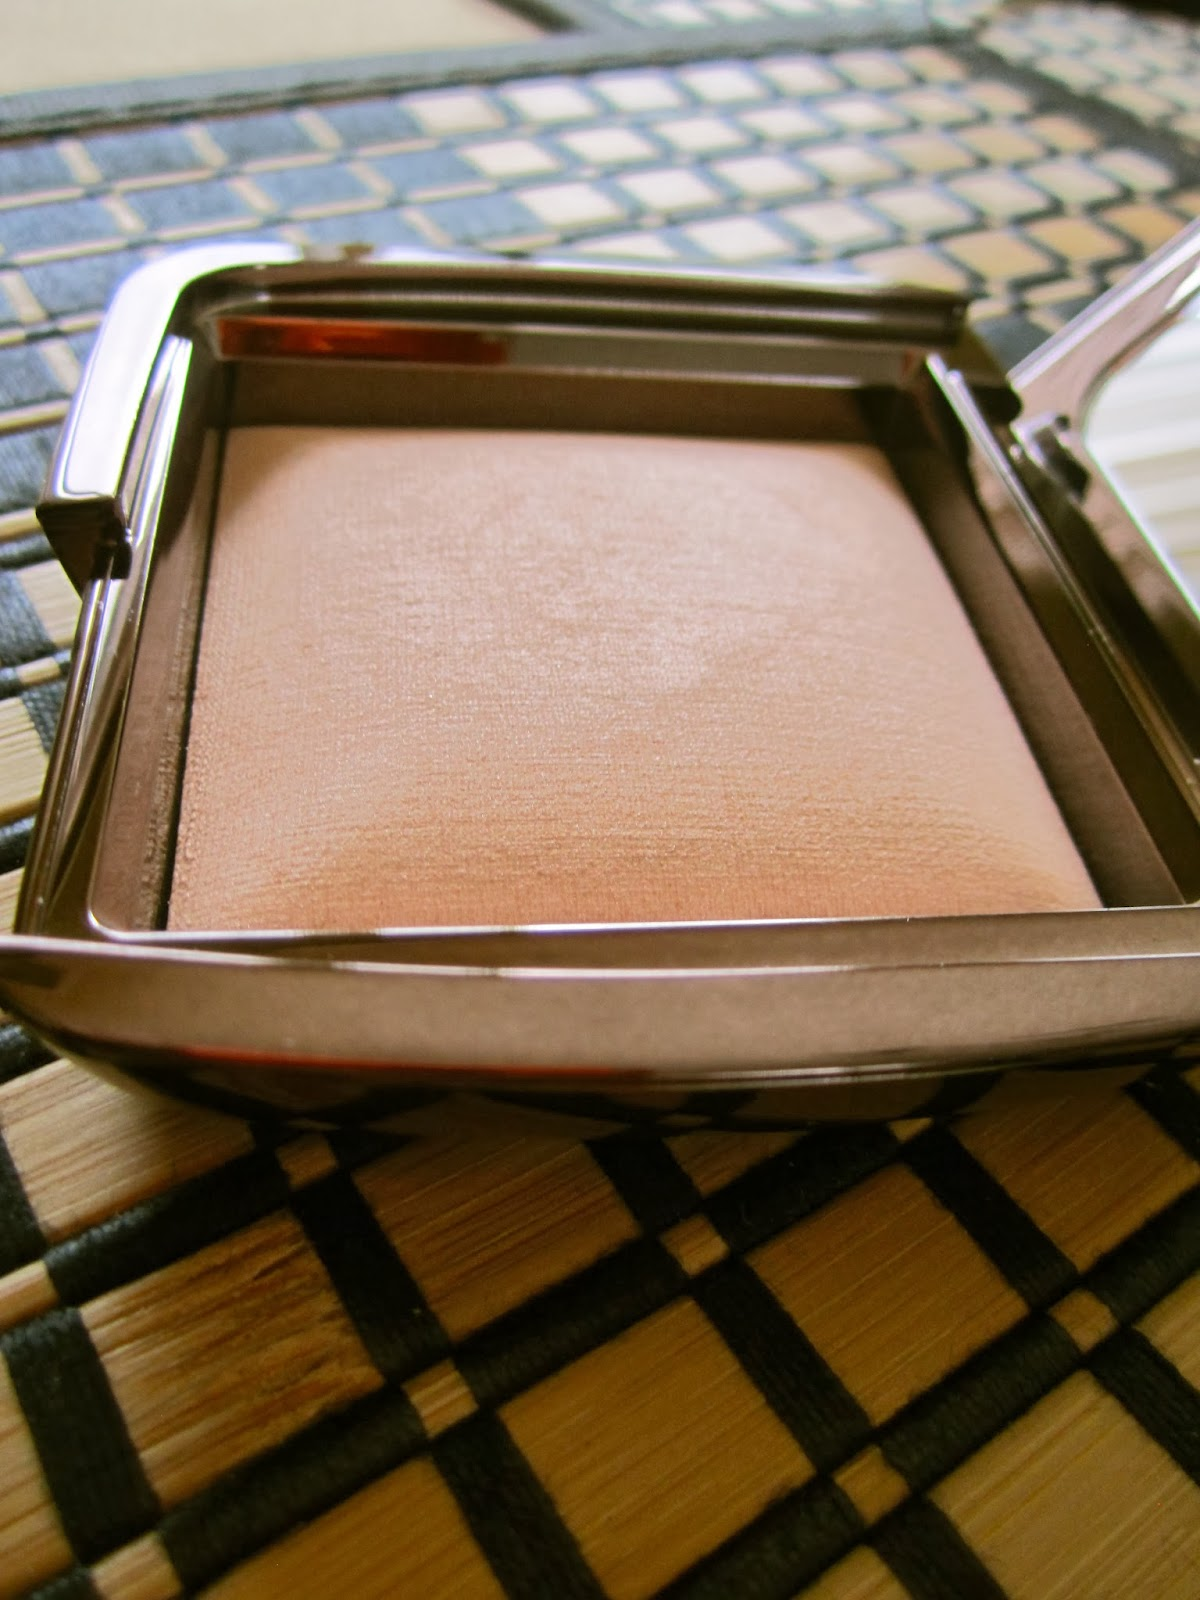 Hourglass Ambient Luminous Light, glowing skin, finishing powder, candlelit glow